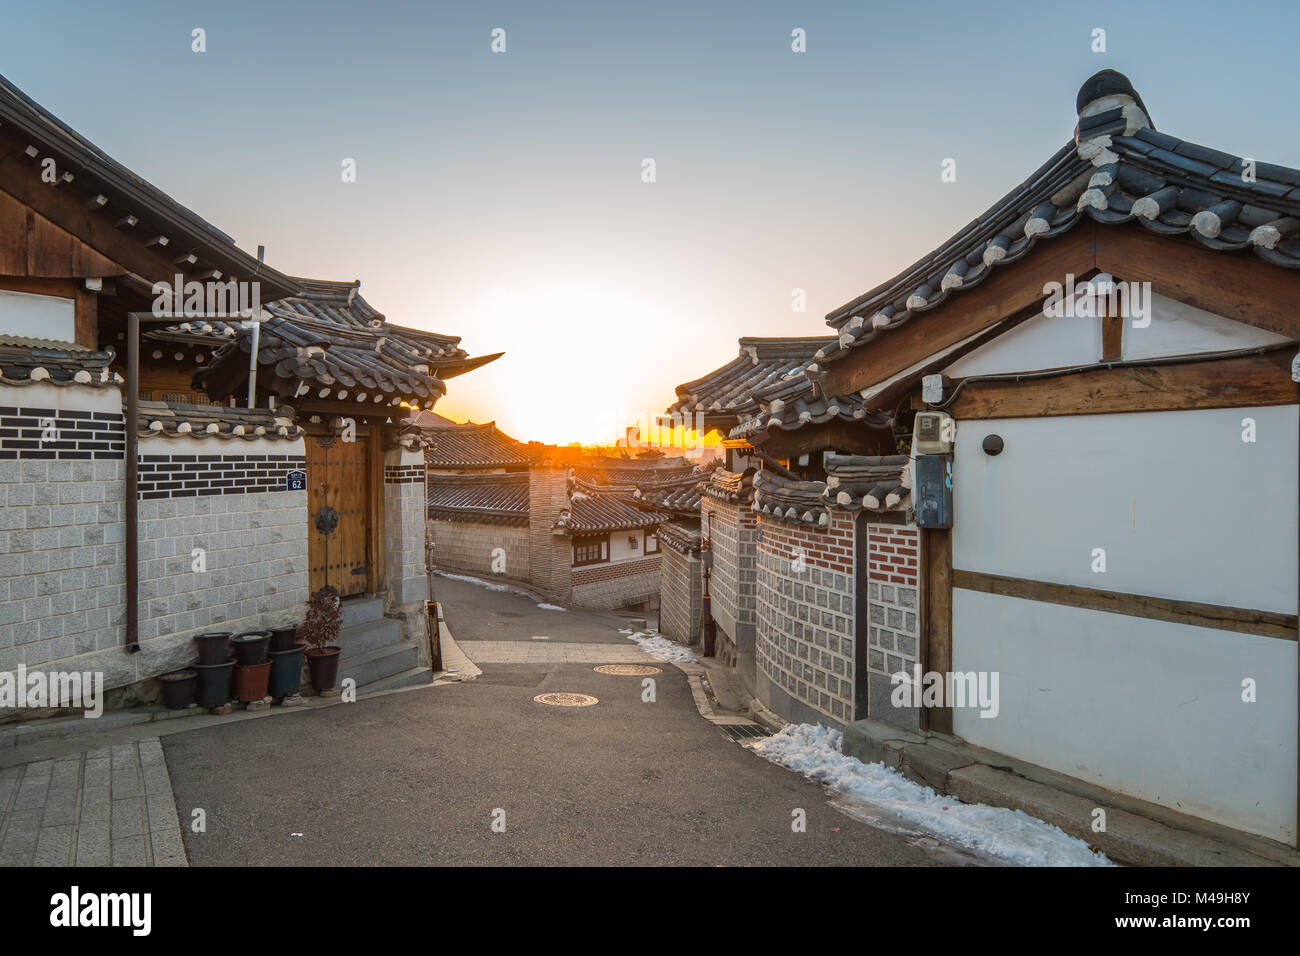 Sunrise in the morning with view of Bukchon Hanok Village in Seoul, Korea. Stock Photo